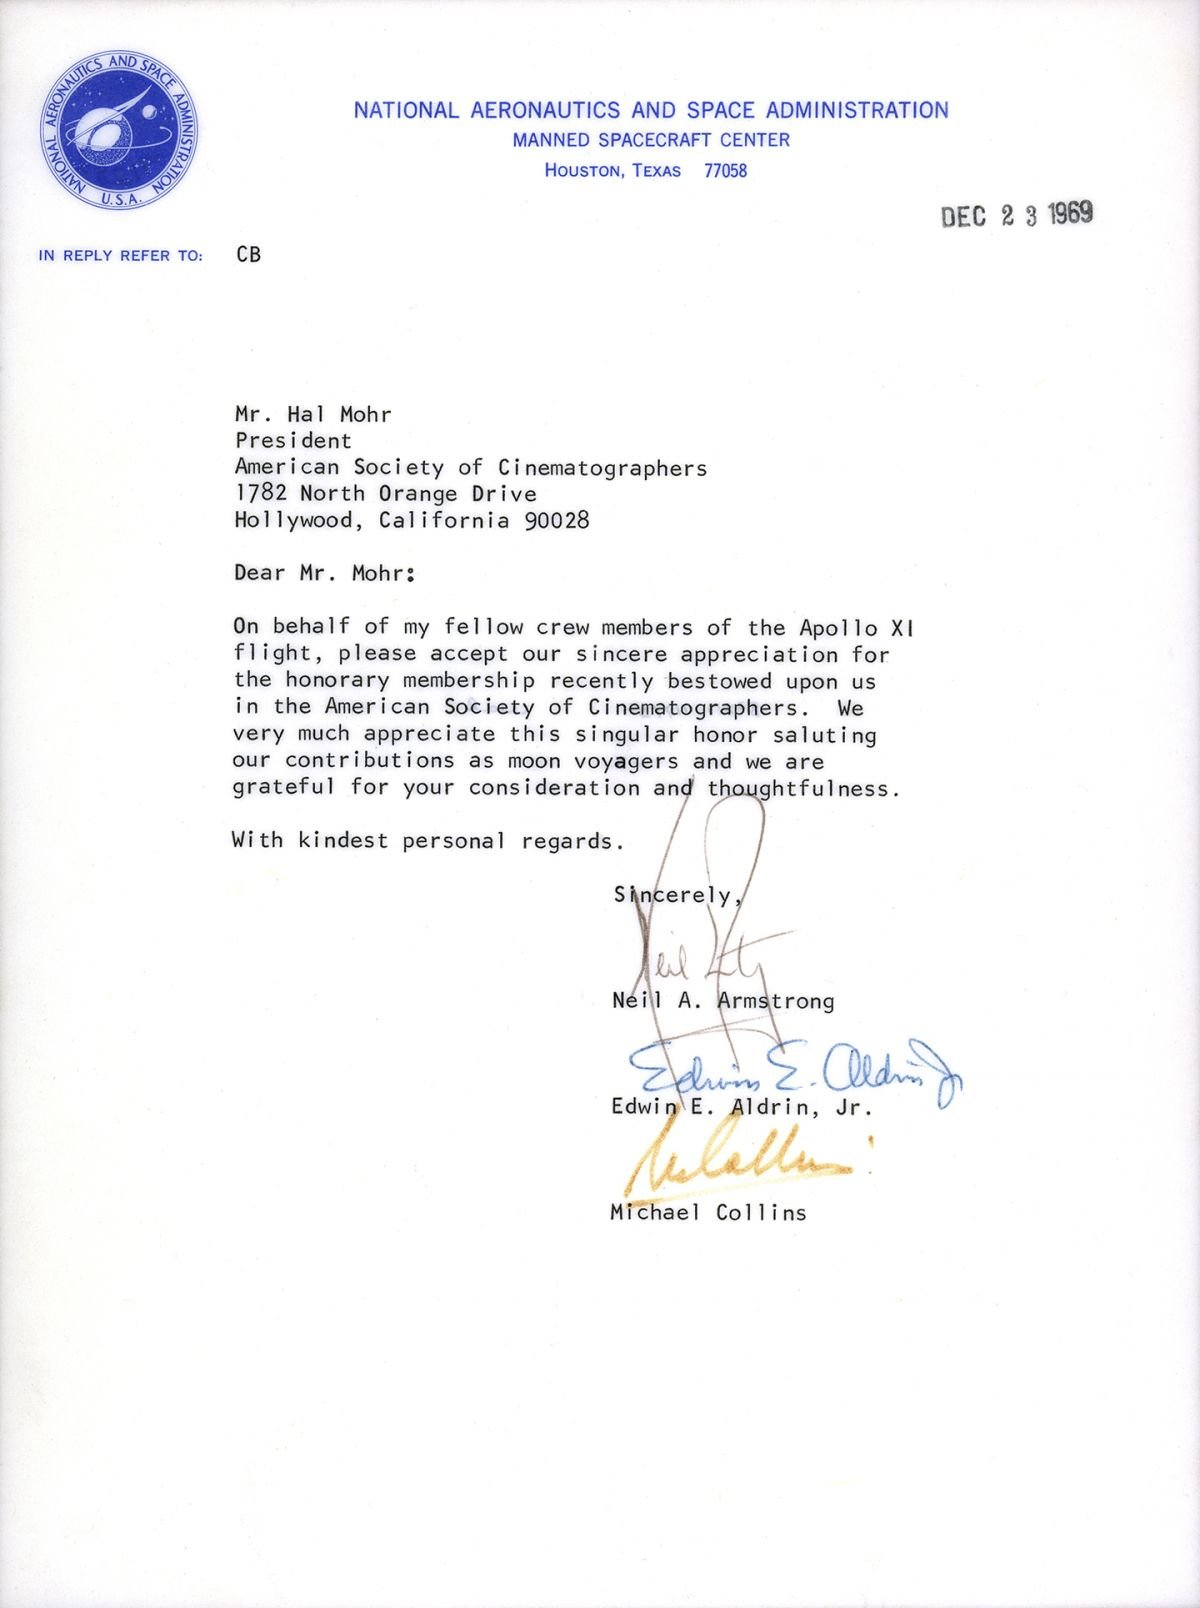 This letter is currently on display at the ASC Clubhouse.